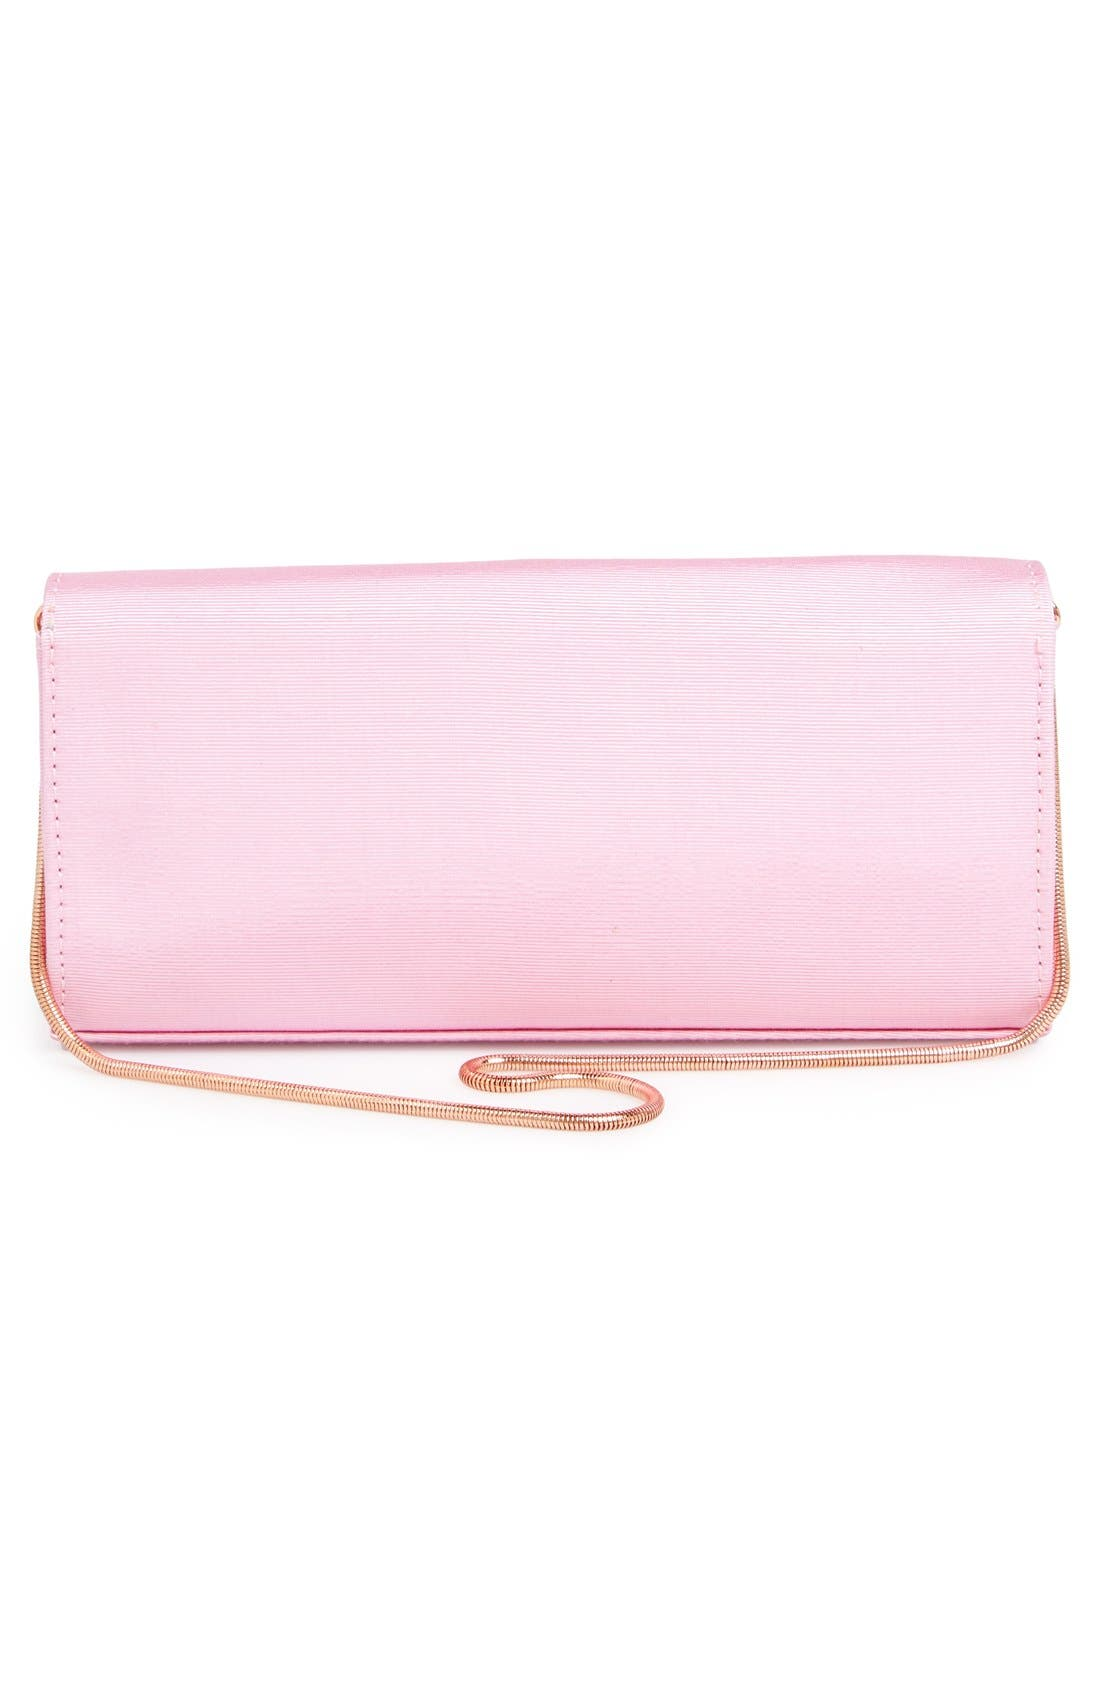 Alternate Image 2  - Ted Baker London 'Bow' Flap Clutch